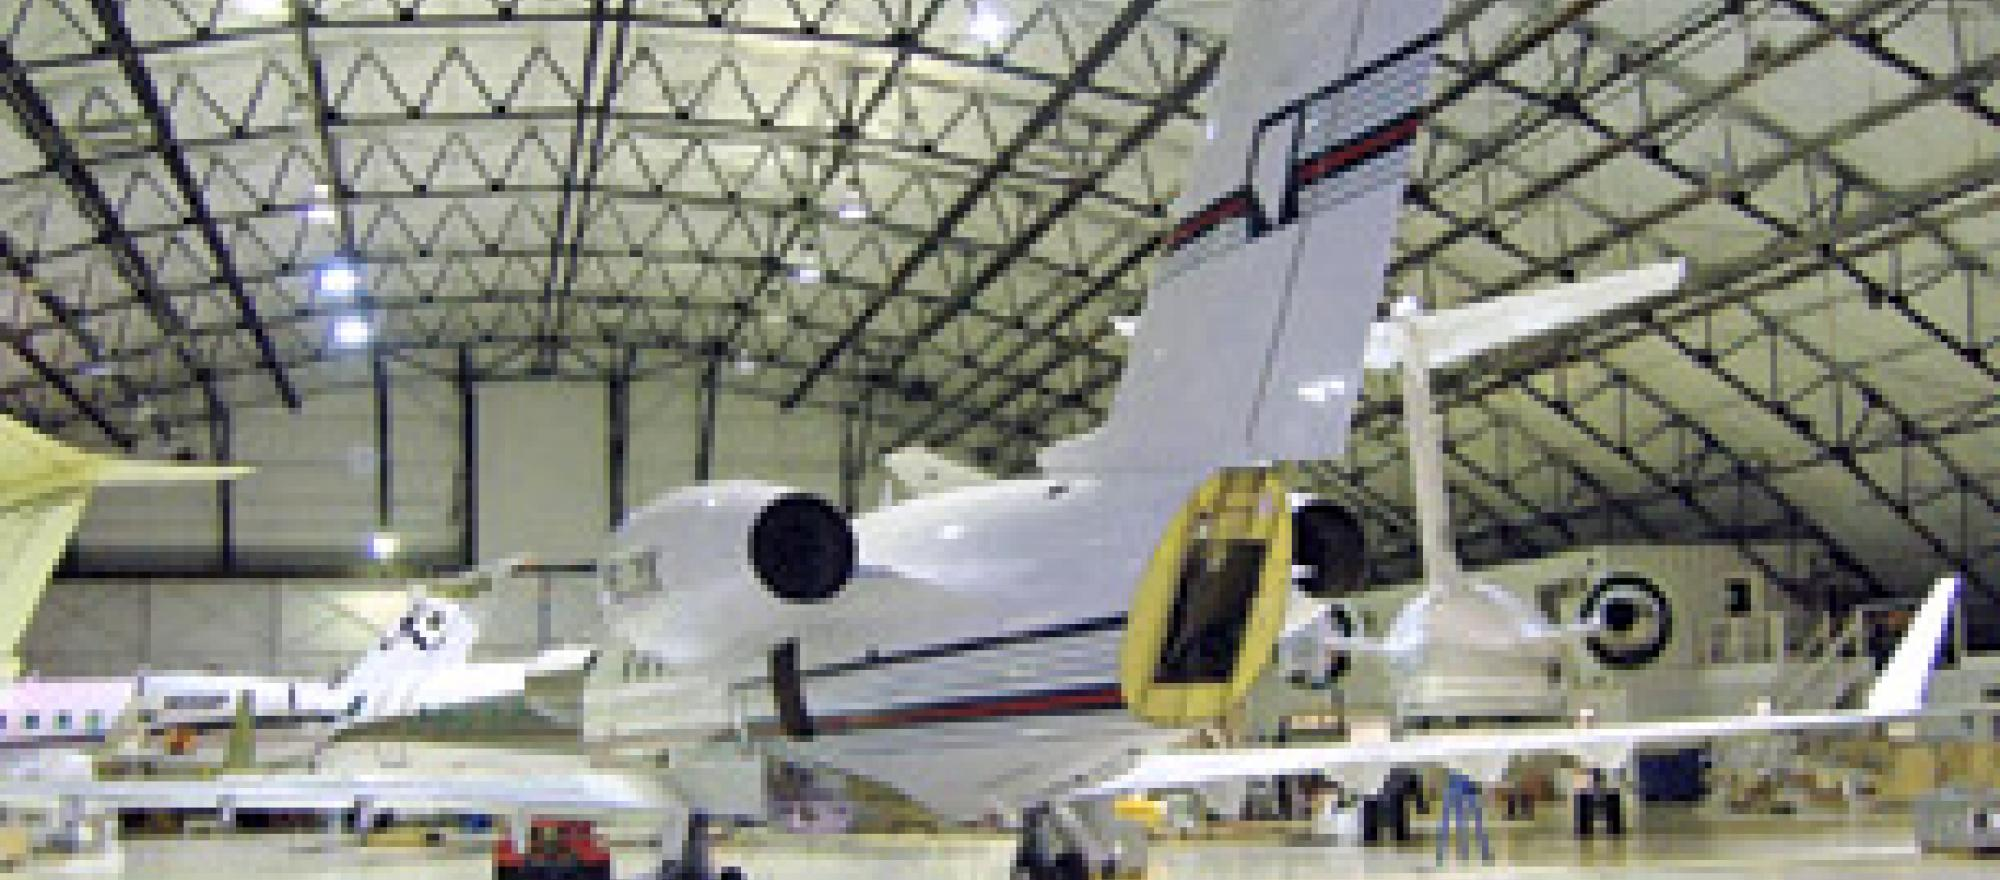 Even though your jet may be hibernating, don't try to skimp on costs by negle